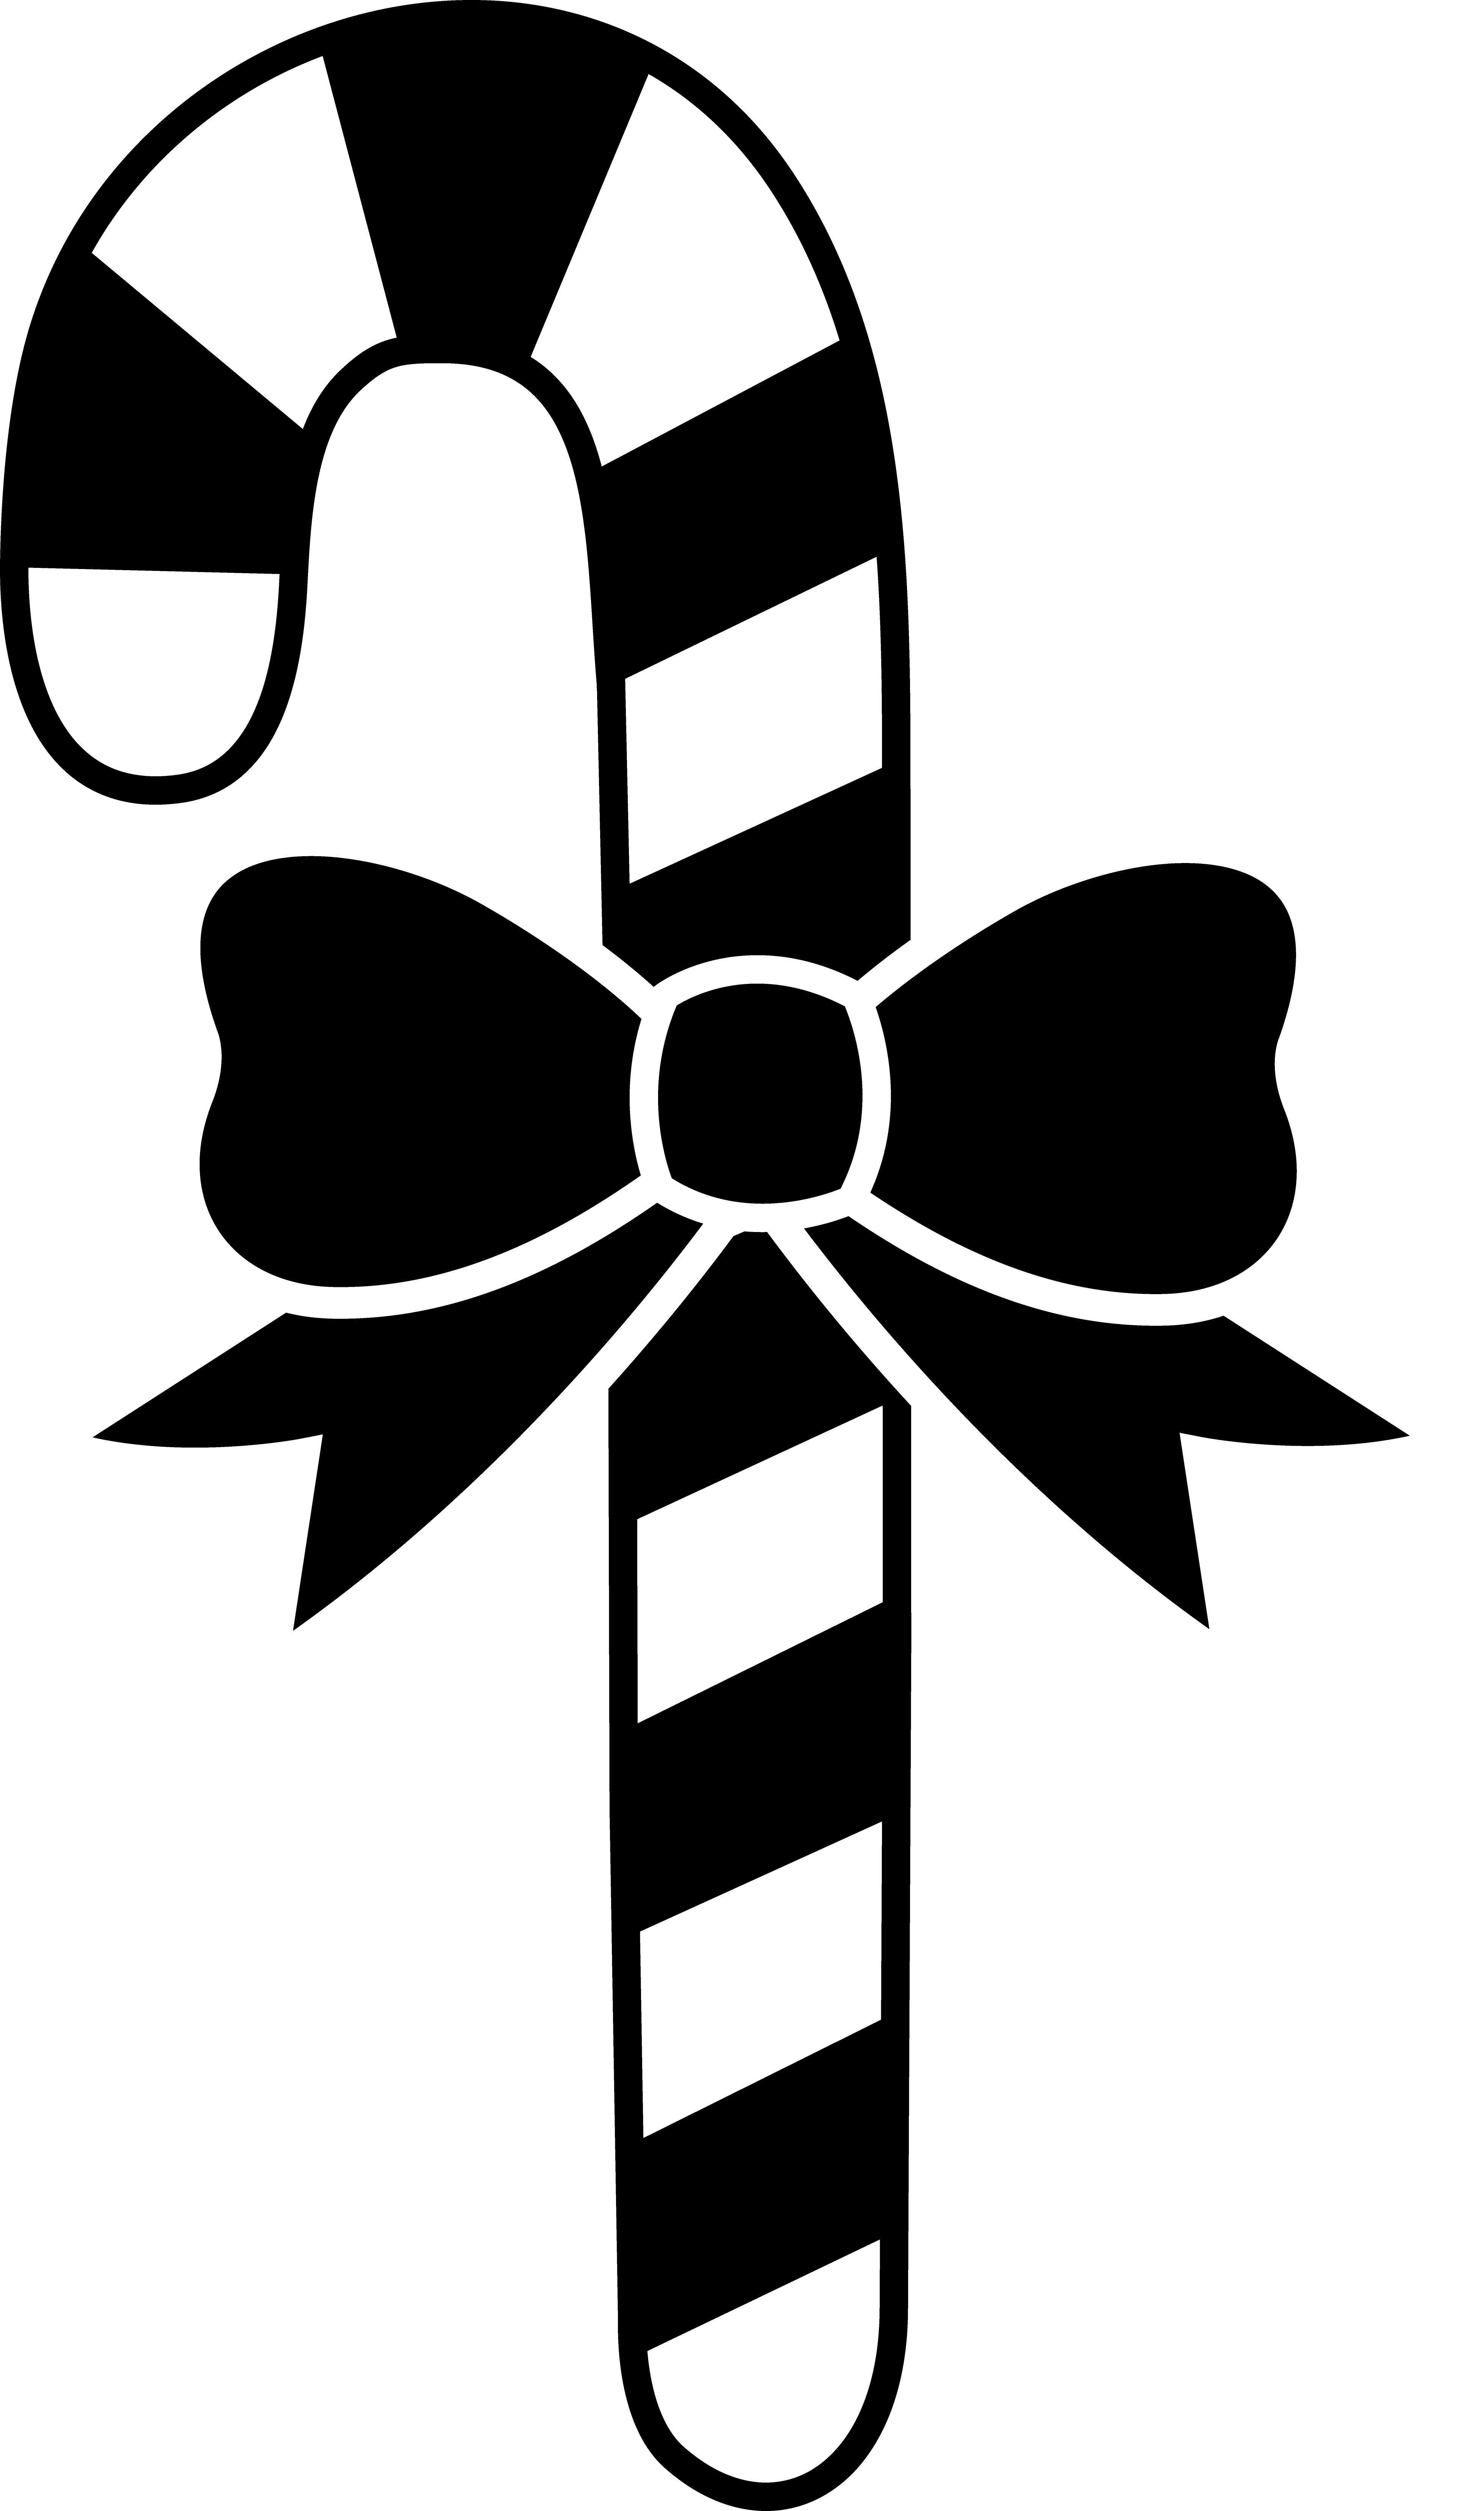 Black and White Candycane with Bow ConvertToBlack